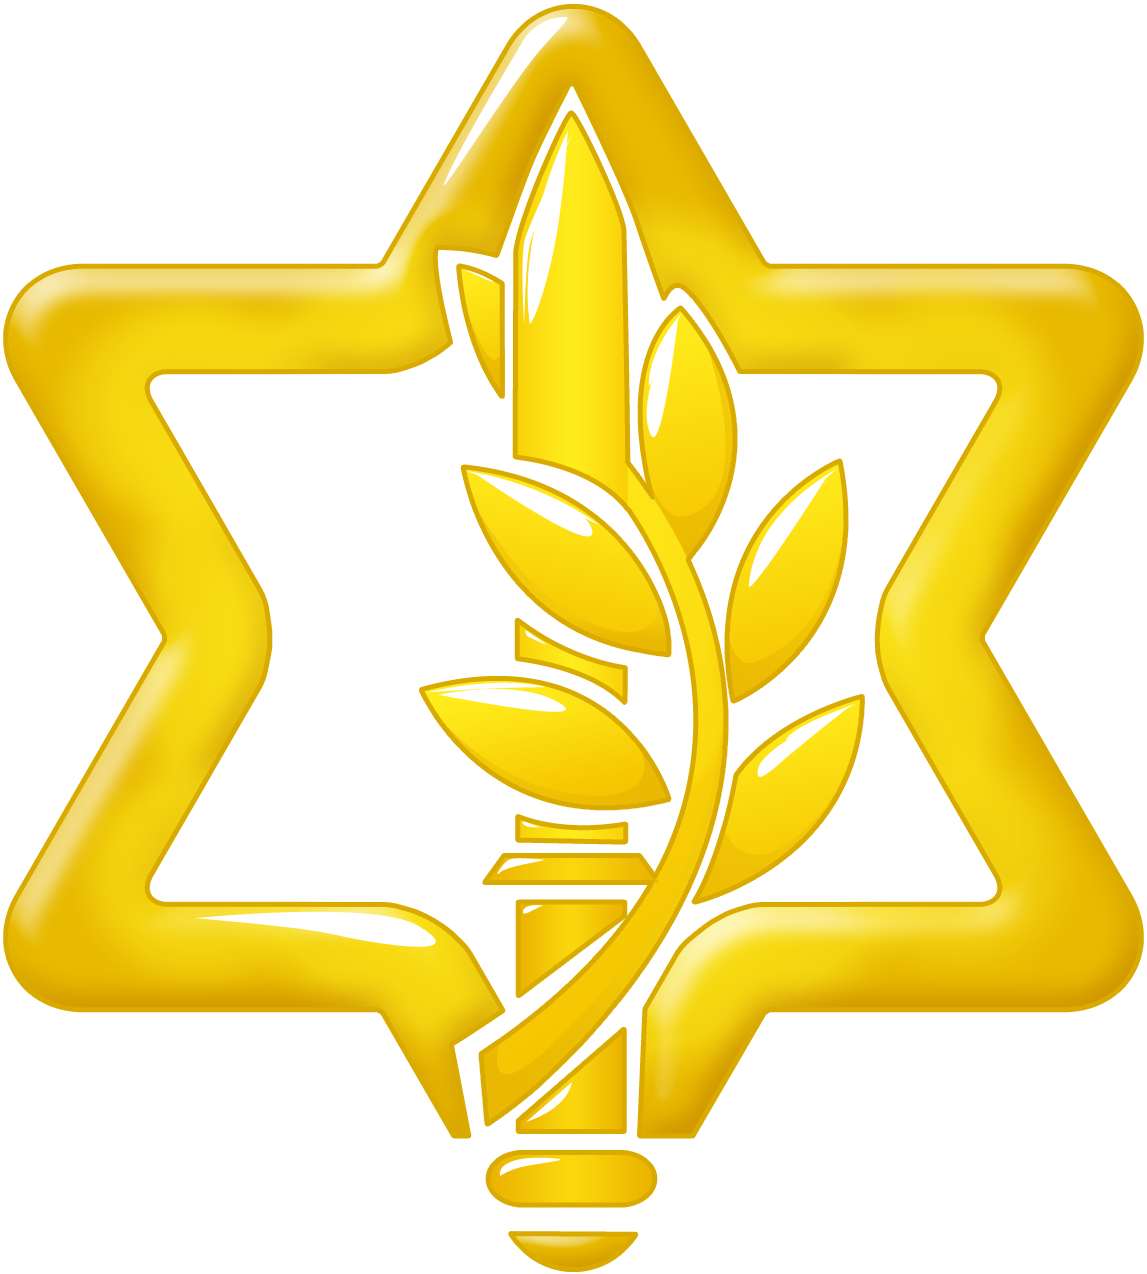 Israel Defense Forces logo, containing a sword wrapped in an olive branch withing the Star of David